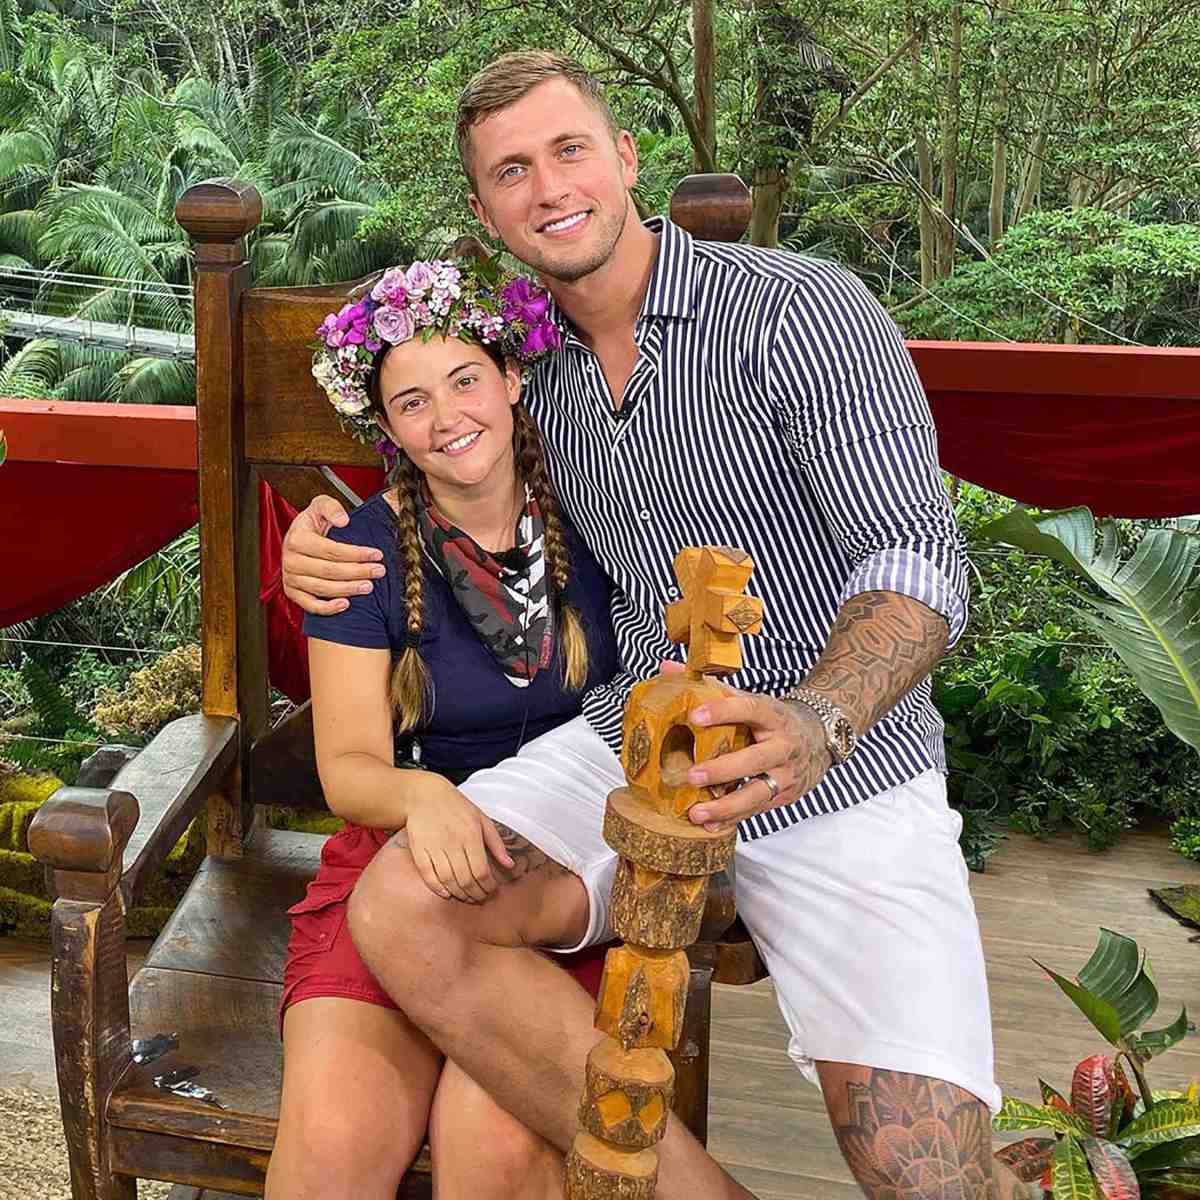 The former soap star won I'm A Celeb in 2019